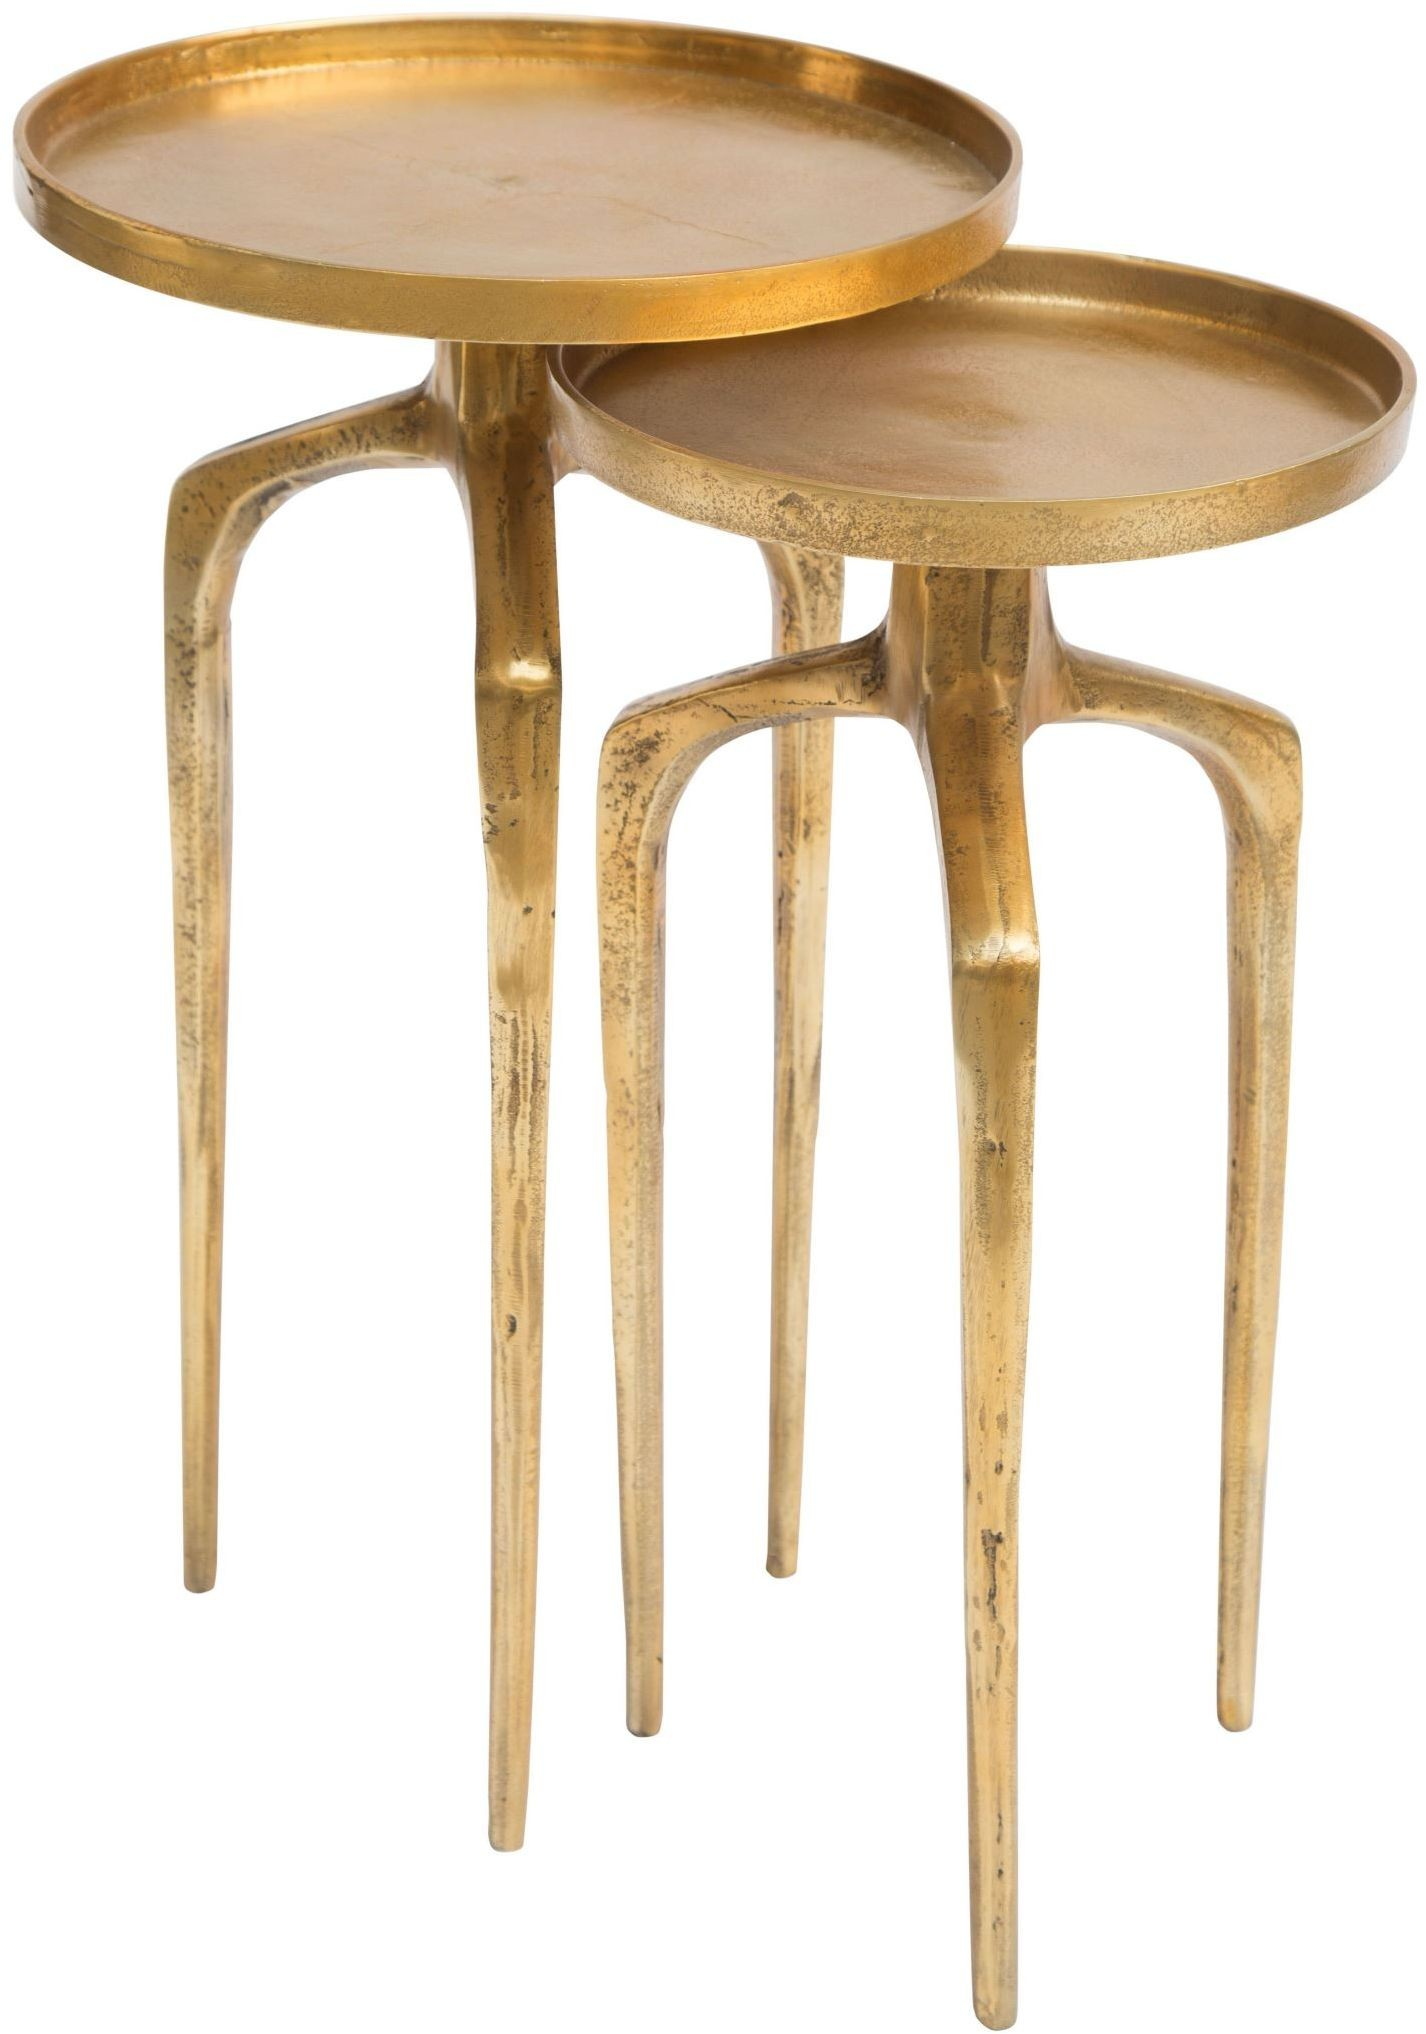 Como Antique Gold Accent Table From Zuo Coleman Furniture